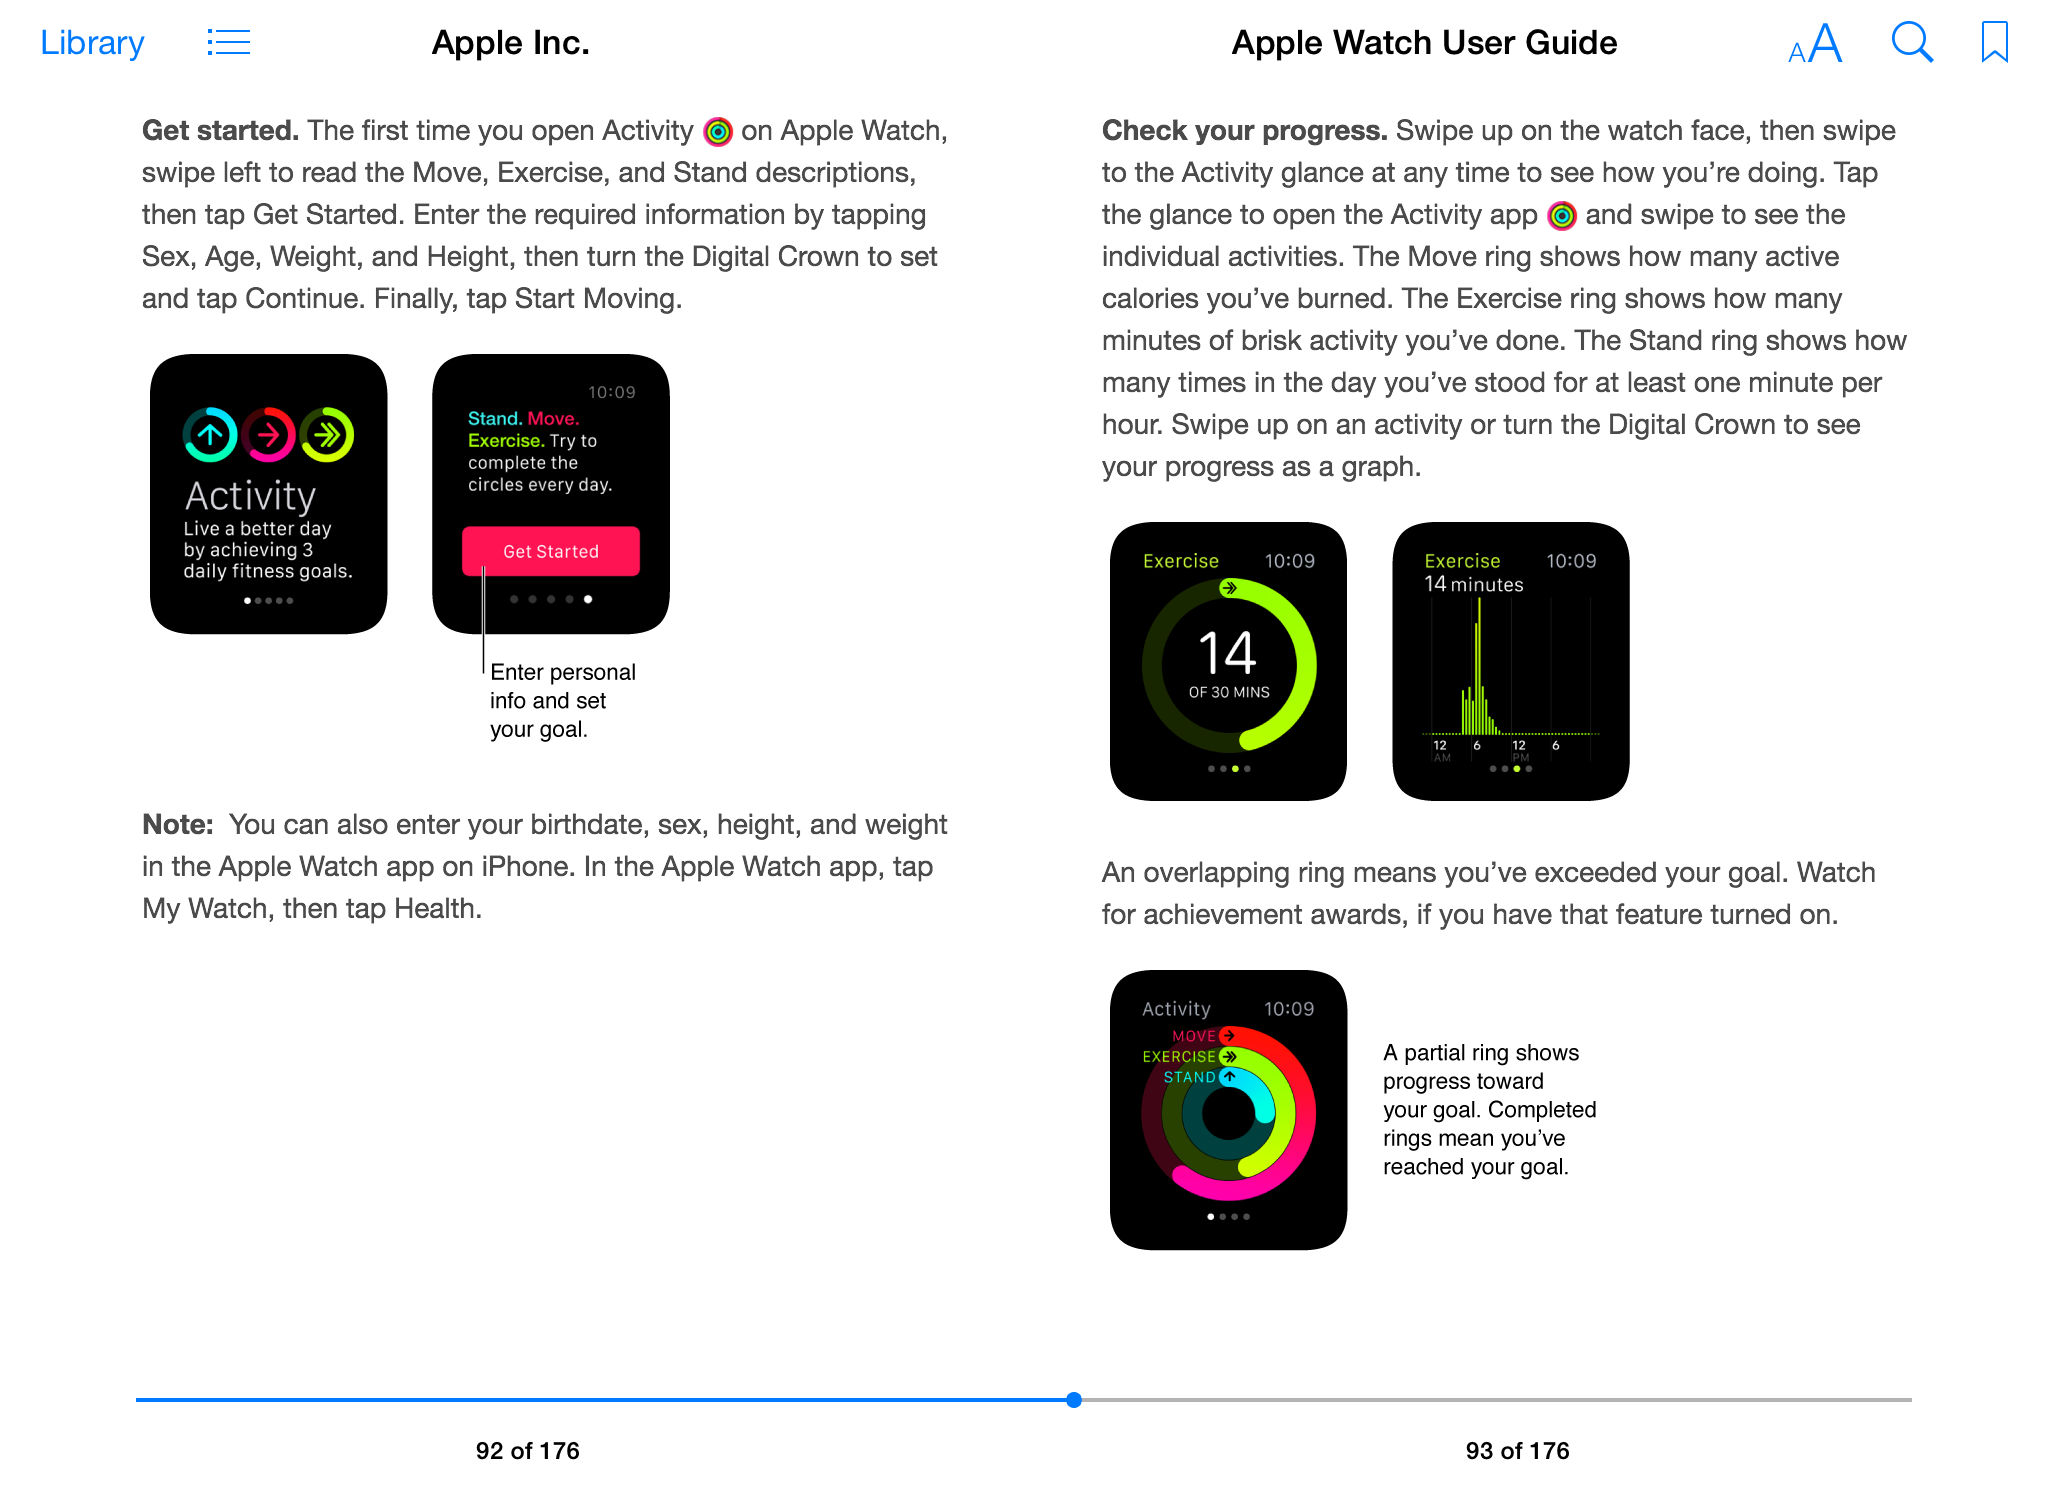 Apple Watch User Guide iBook screenshot 005